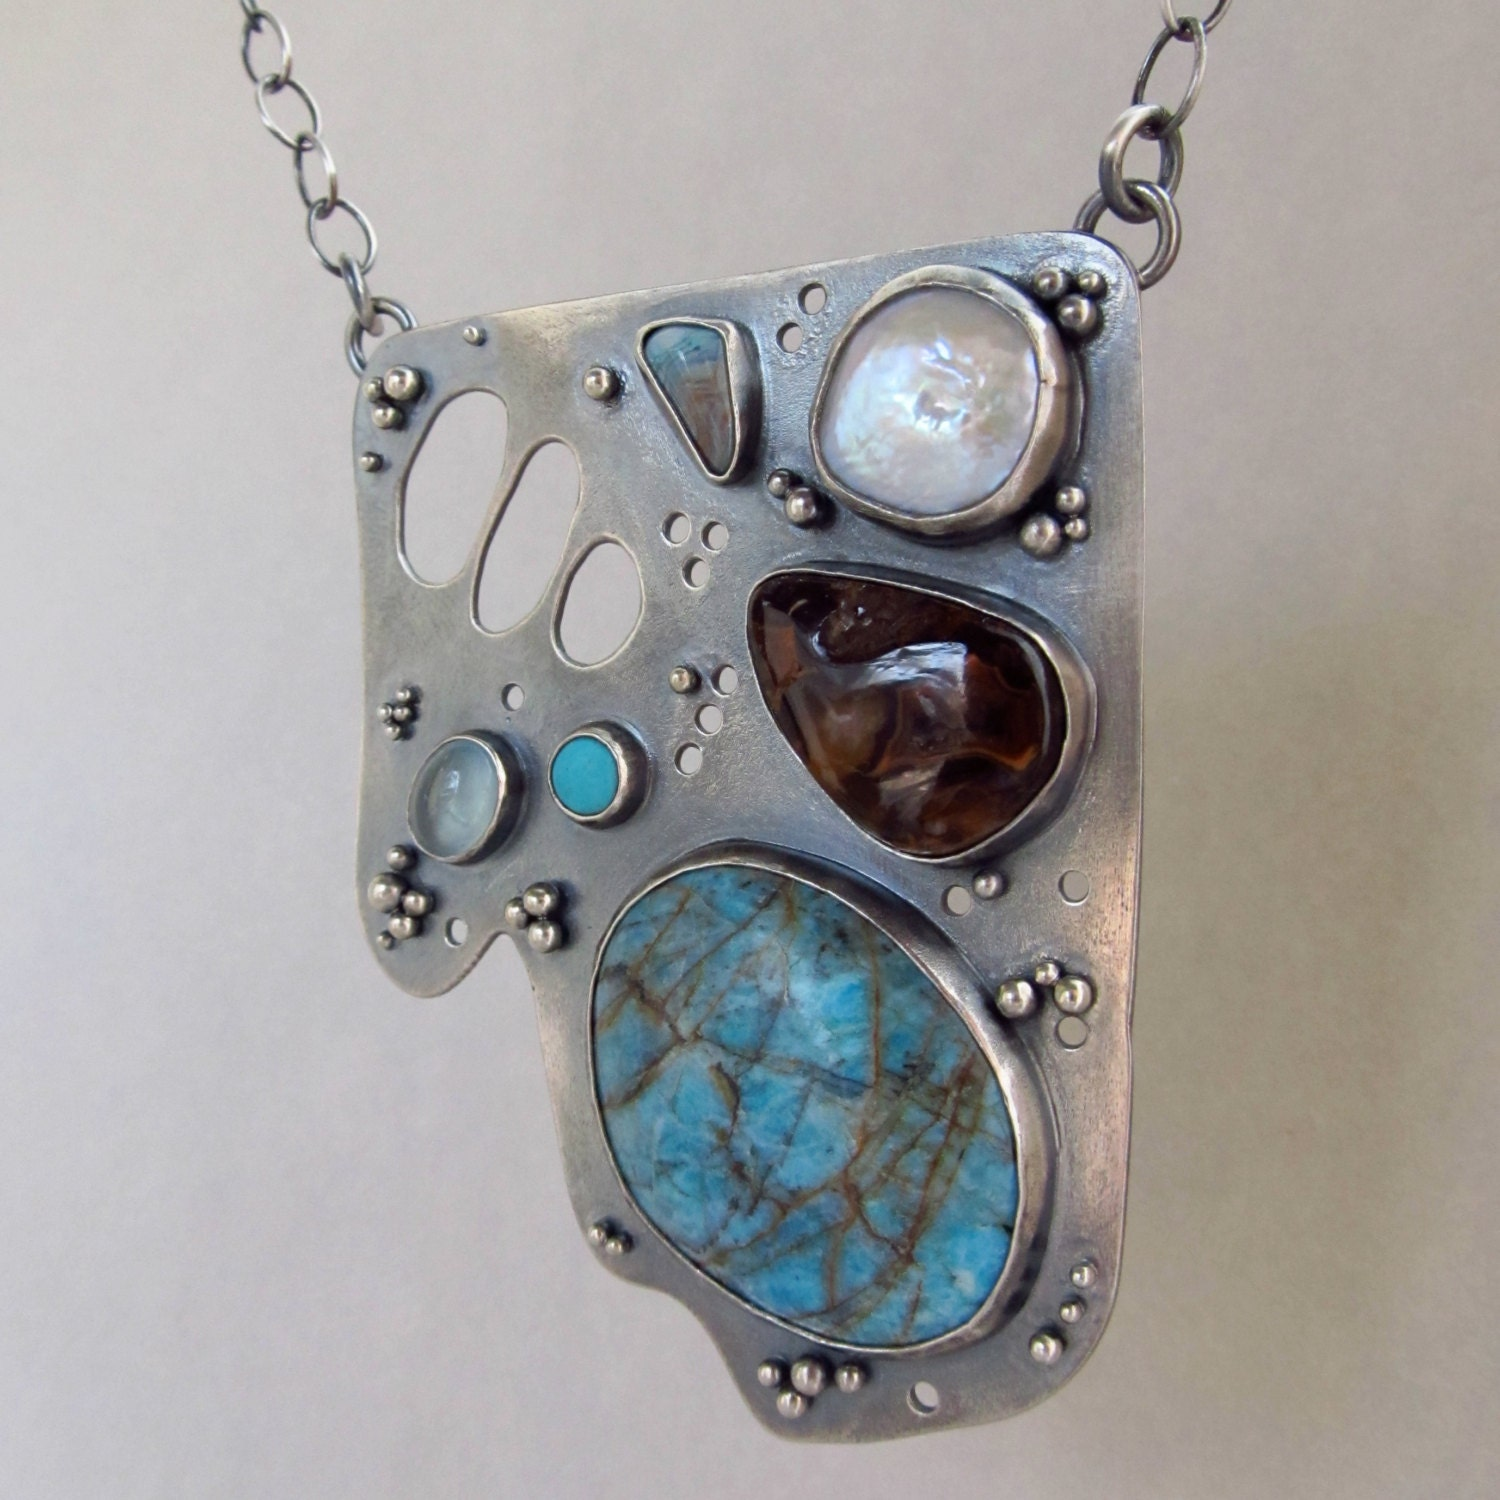 large sterling silver necklace with chrysocolla in quartz, fire agate, aquamarine, turquoise, pearl - laurenmeredith